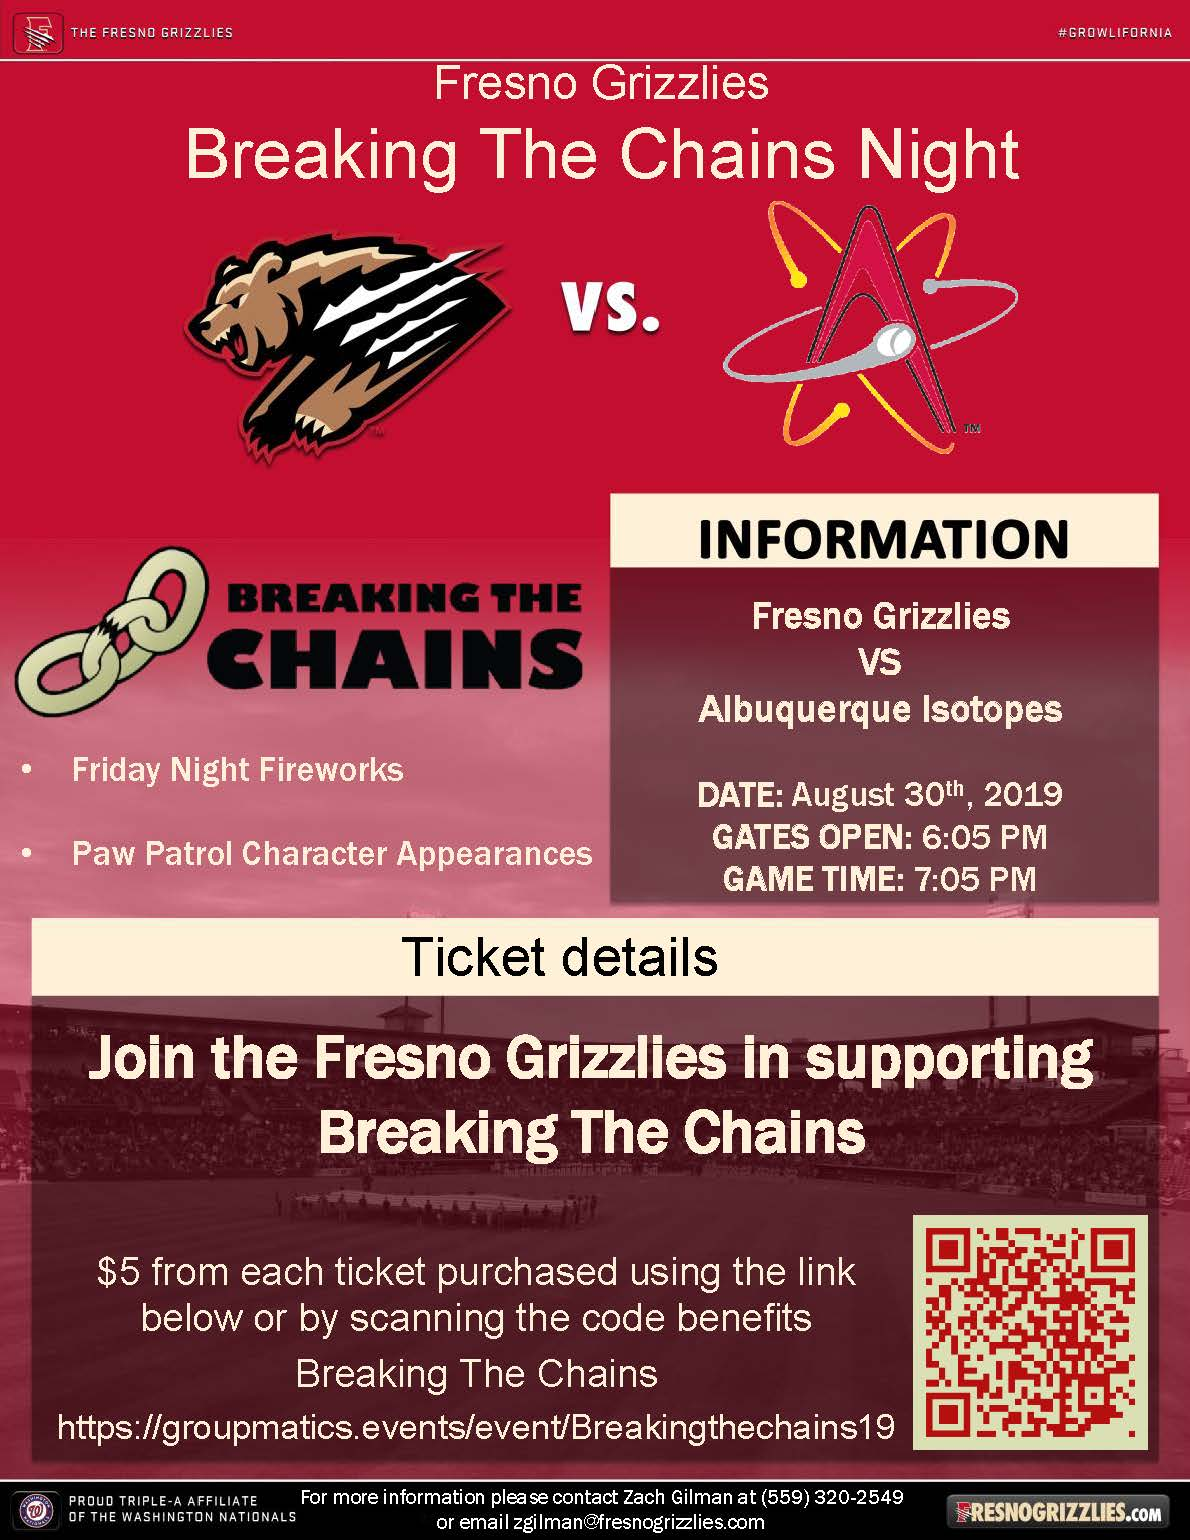 Breaking the Chains Night at Grizzlies Stadium